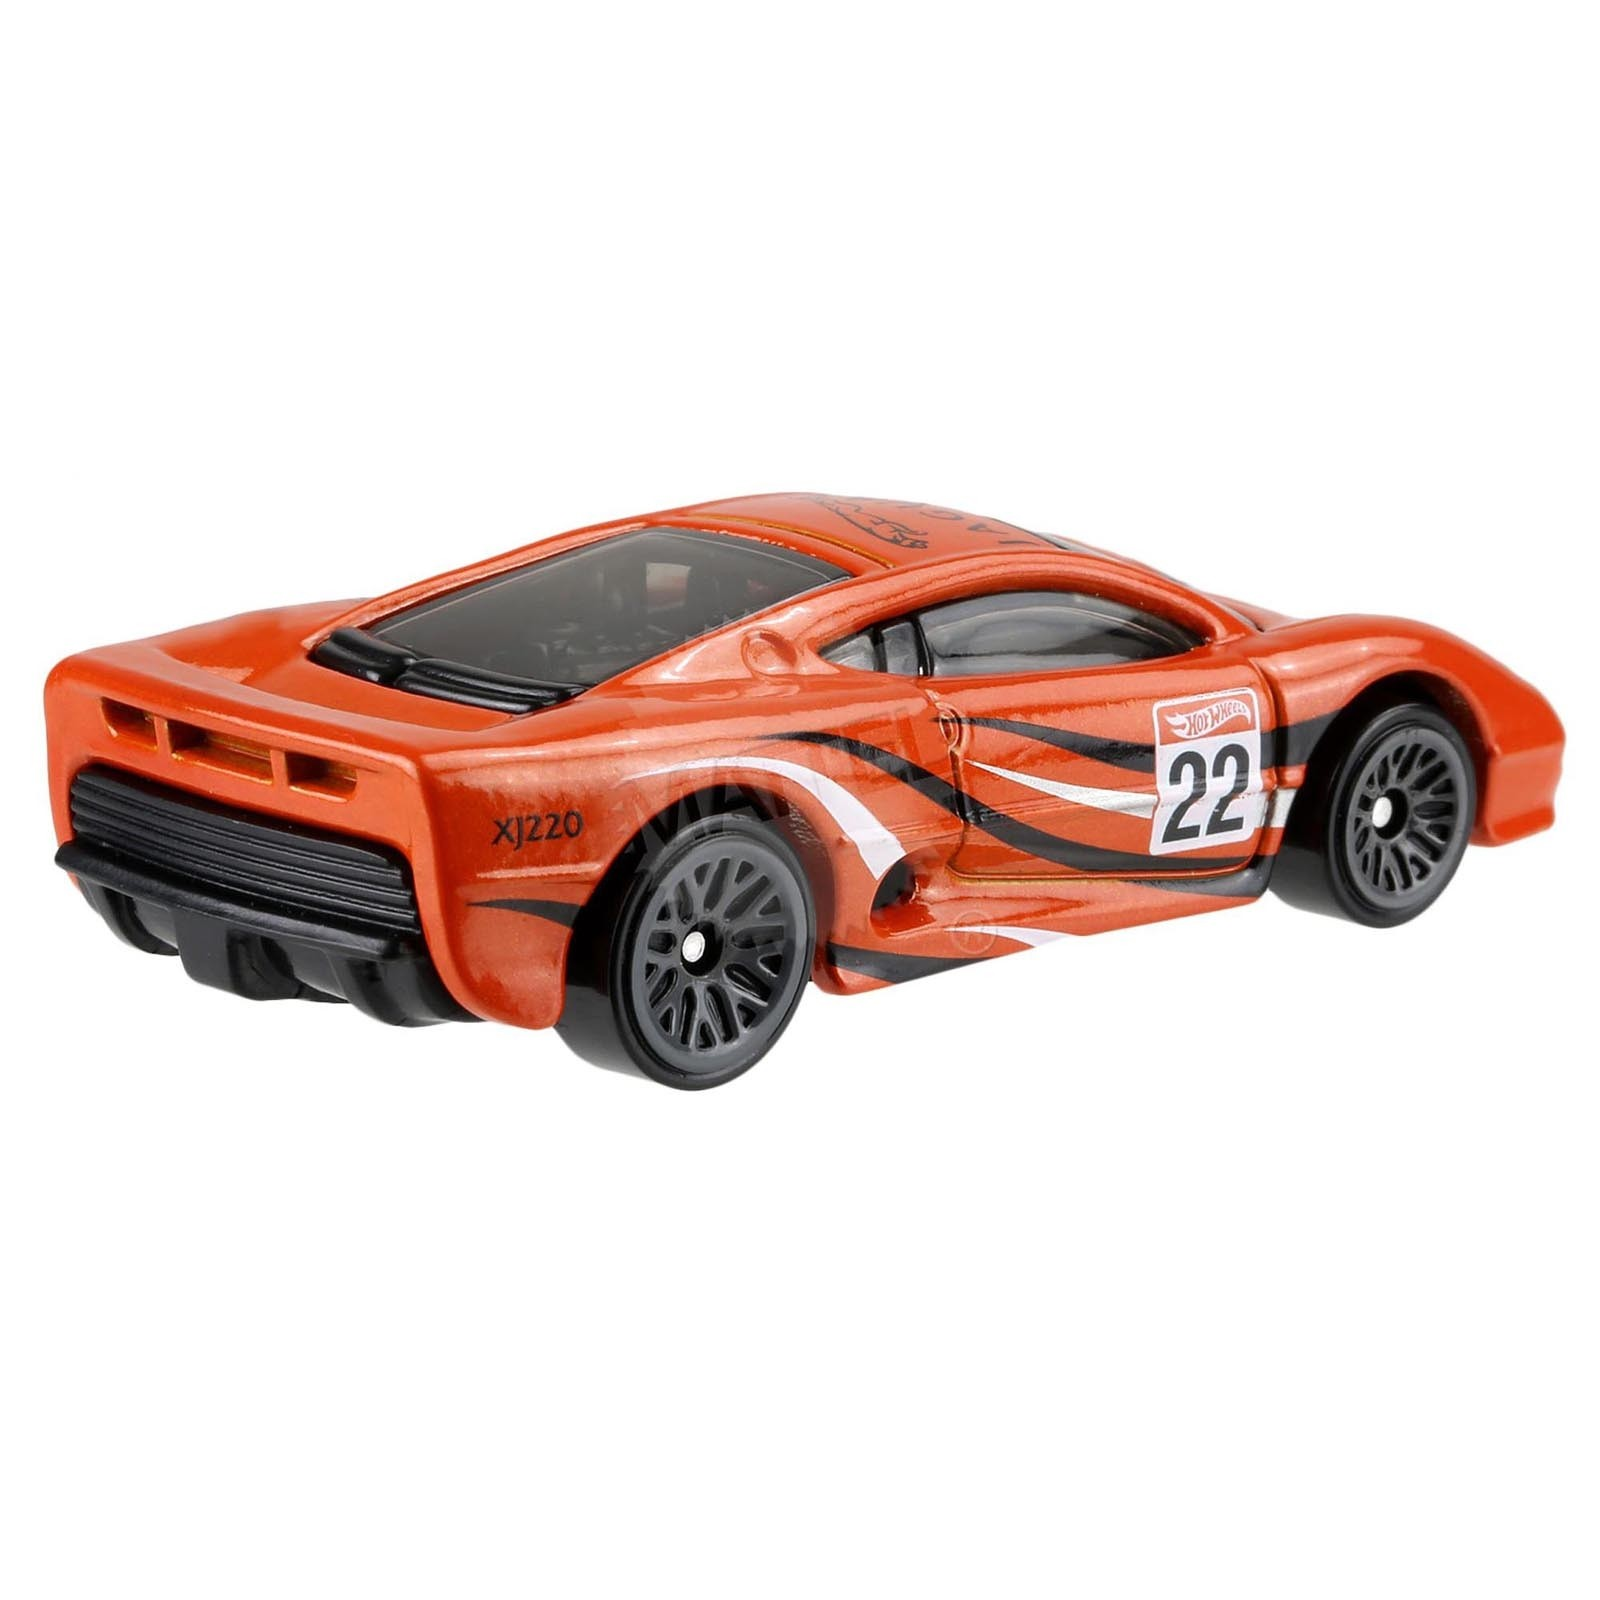 Hot Wheels - Jaguar XJ220 - FYC32